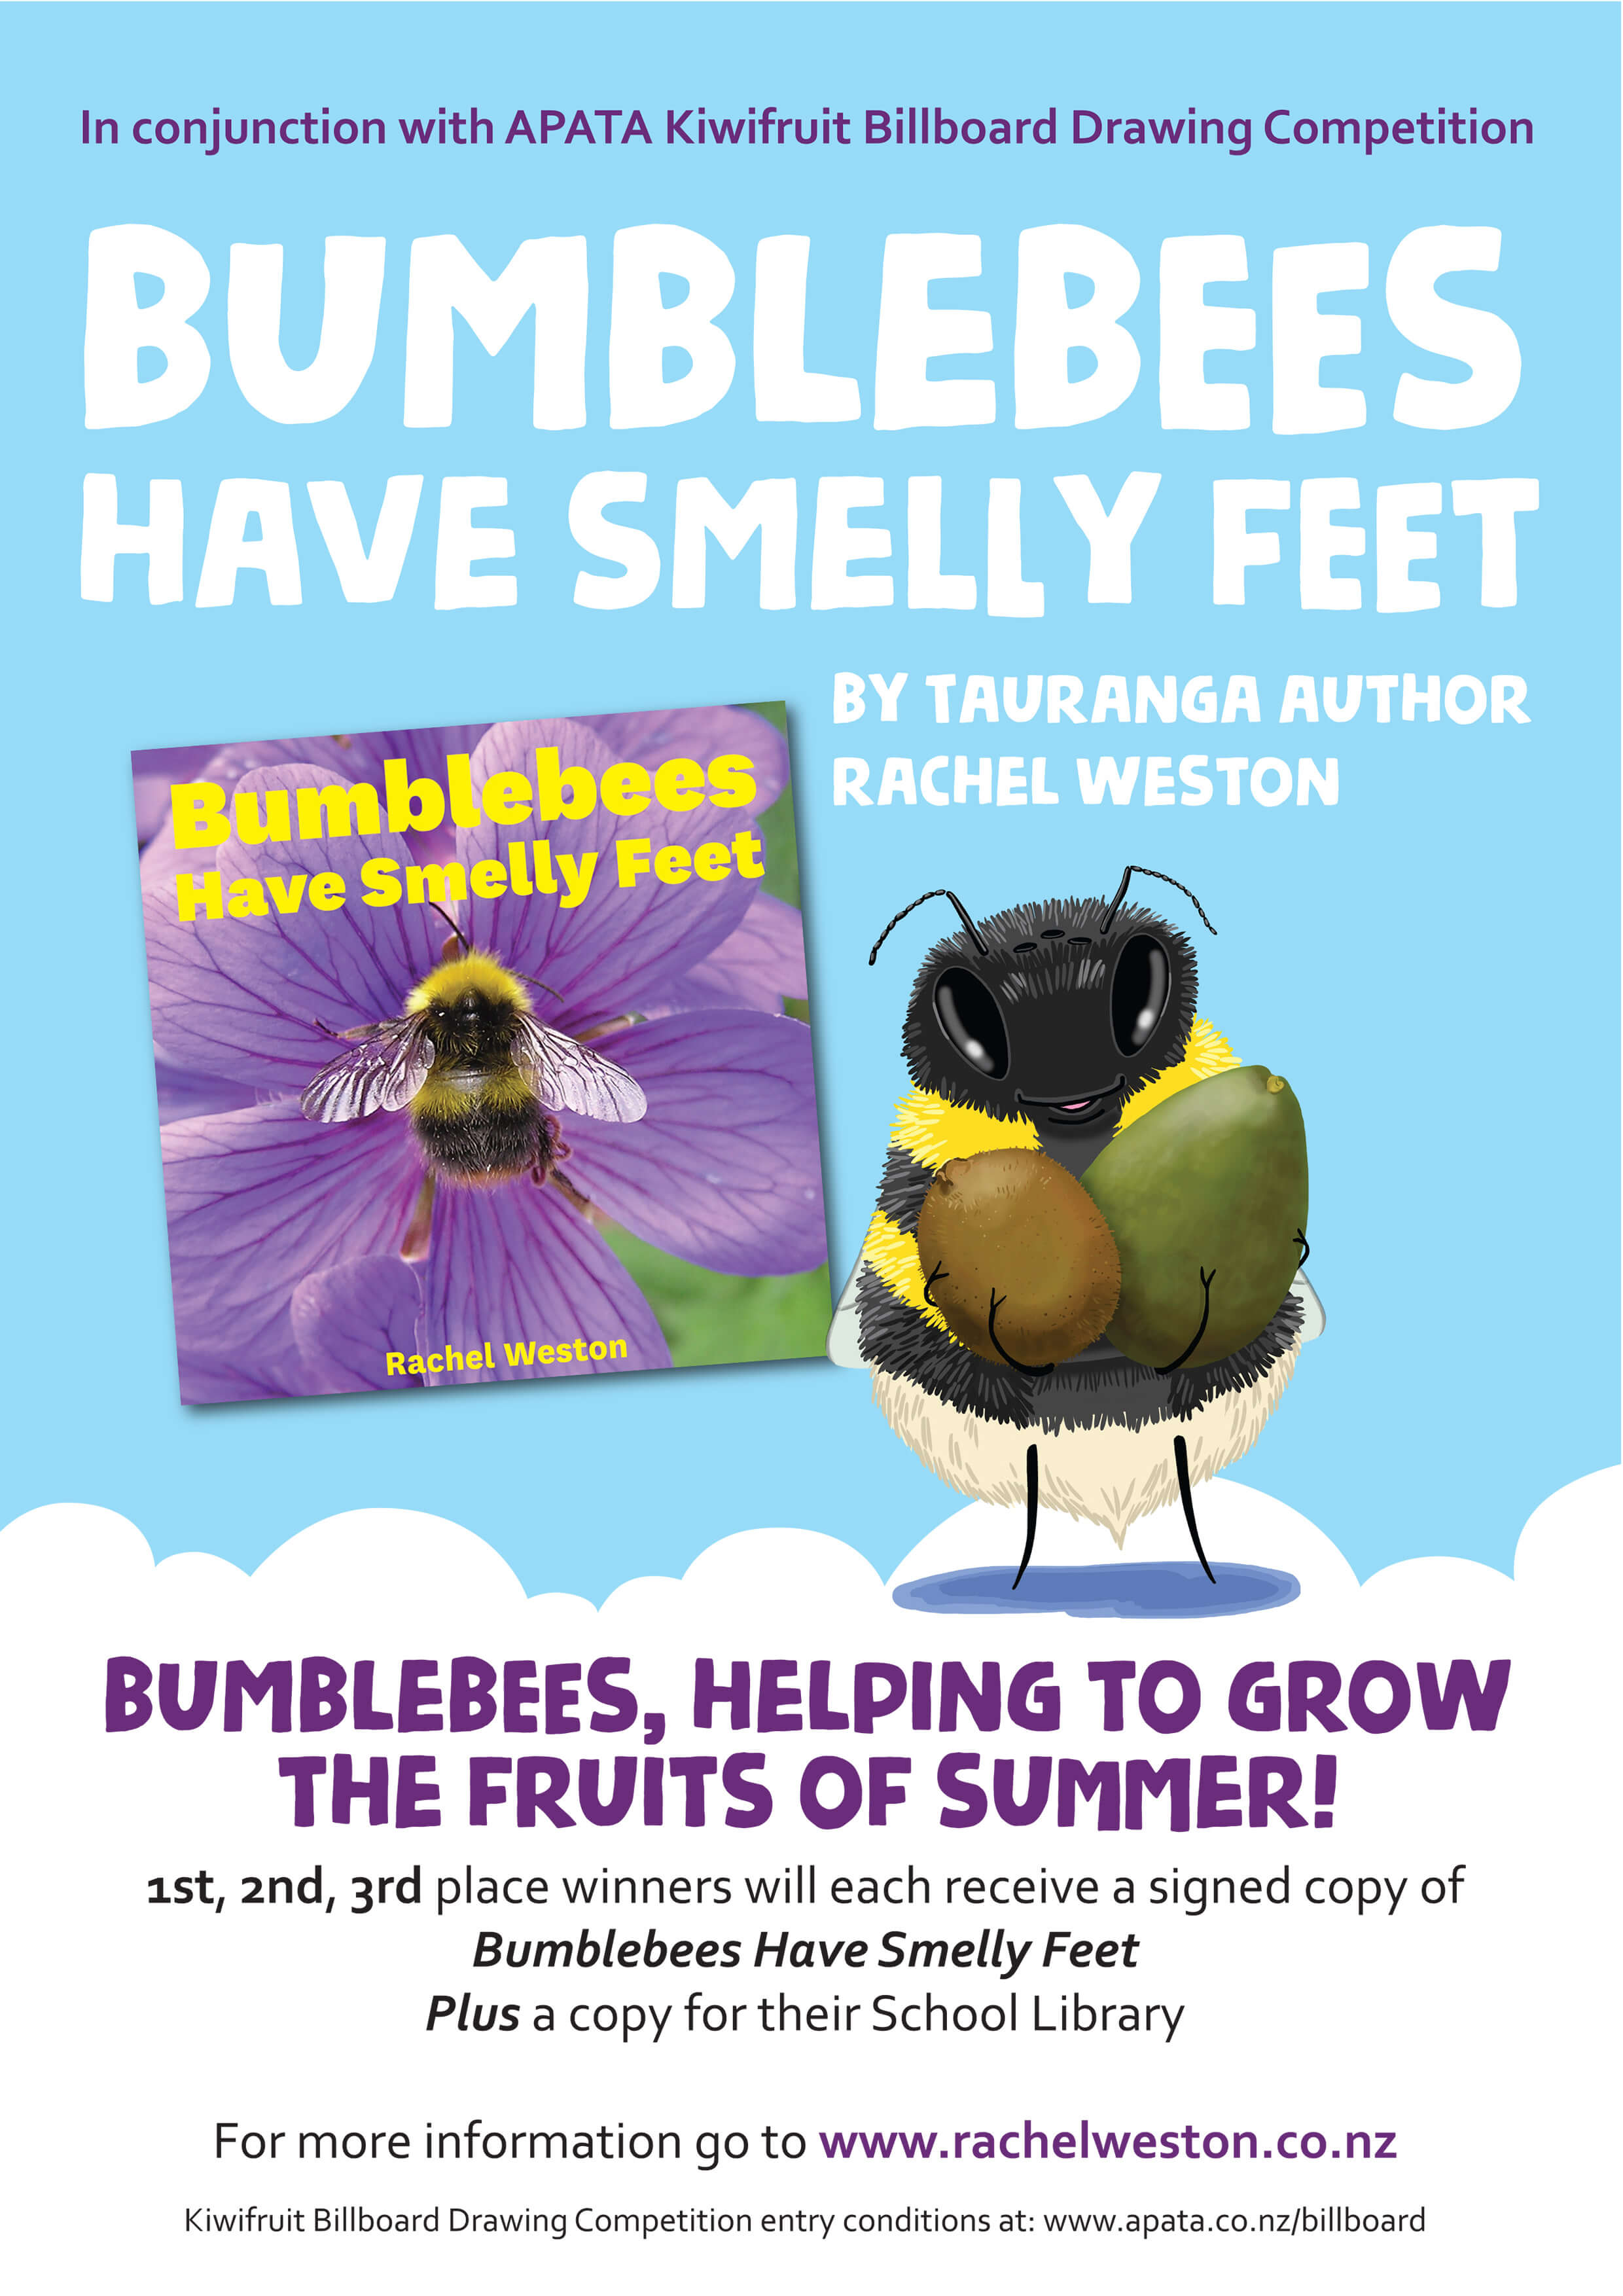 bumblebees have smelly feet apata kiwifruit poster